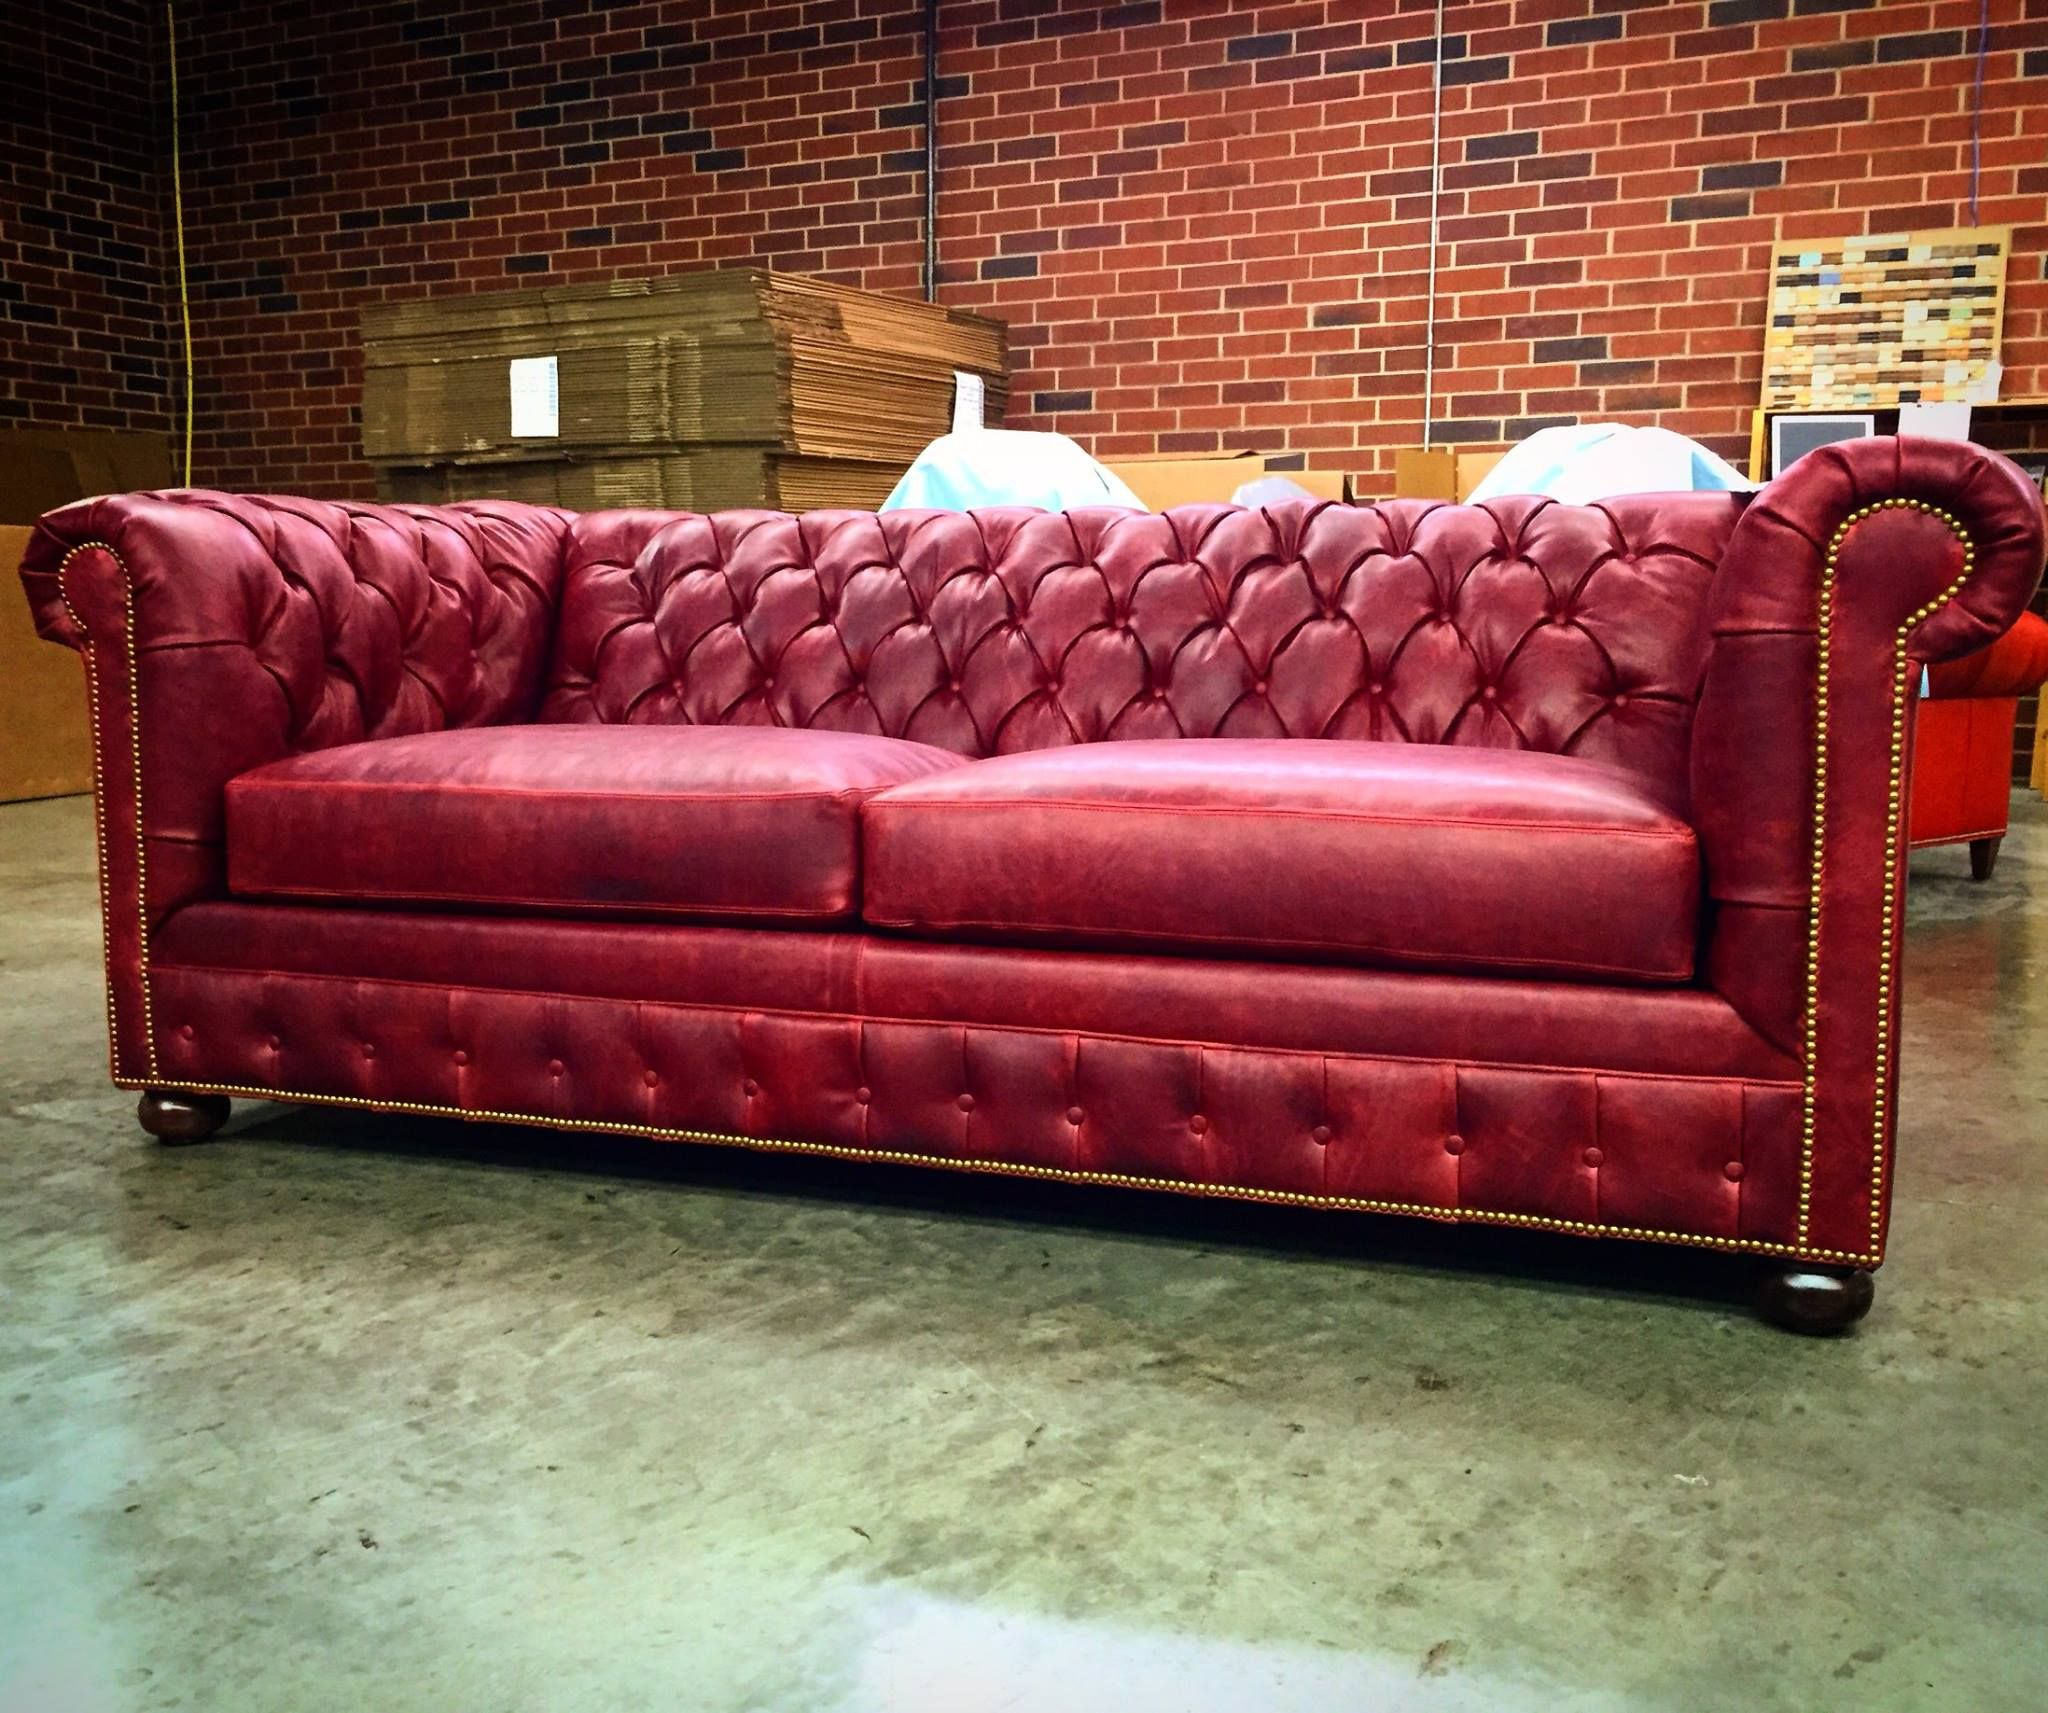 The Irving Custom Traditional Chesterfield Sofas More Classic Chesterfield Sofa Traditional Chesterfield Sofa Sofa